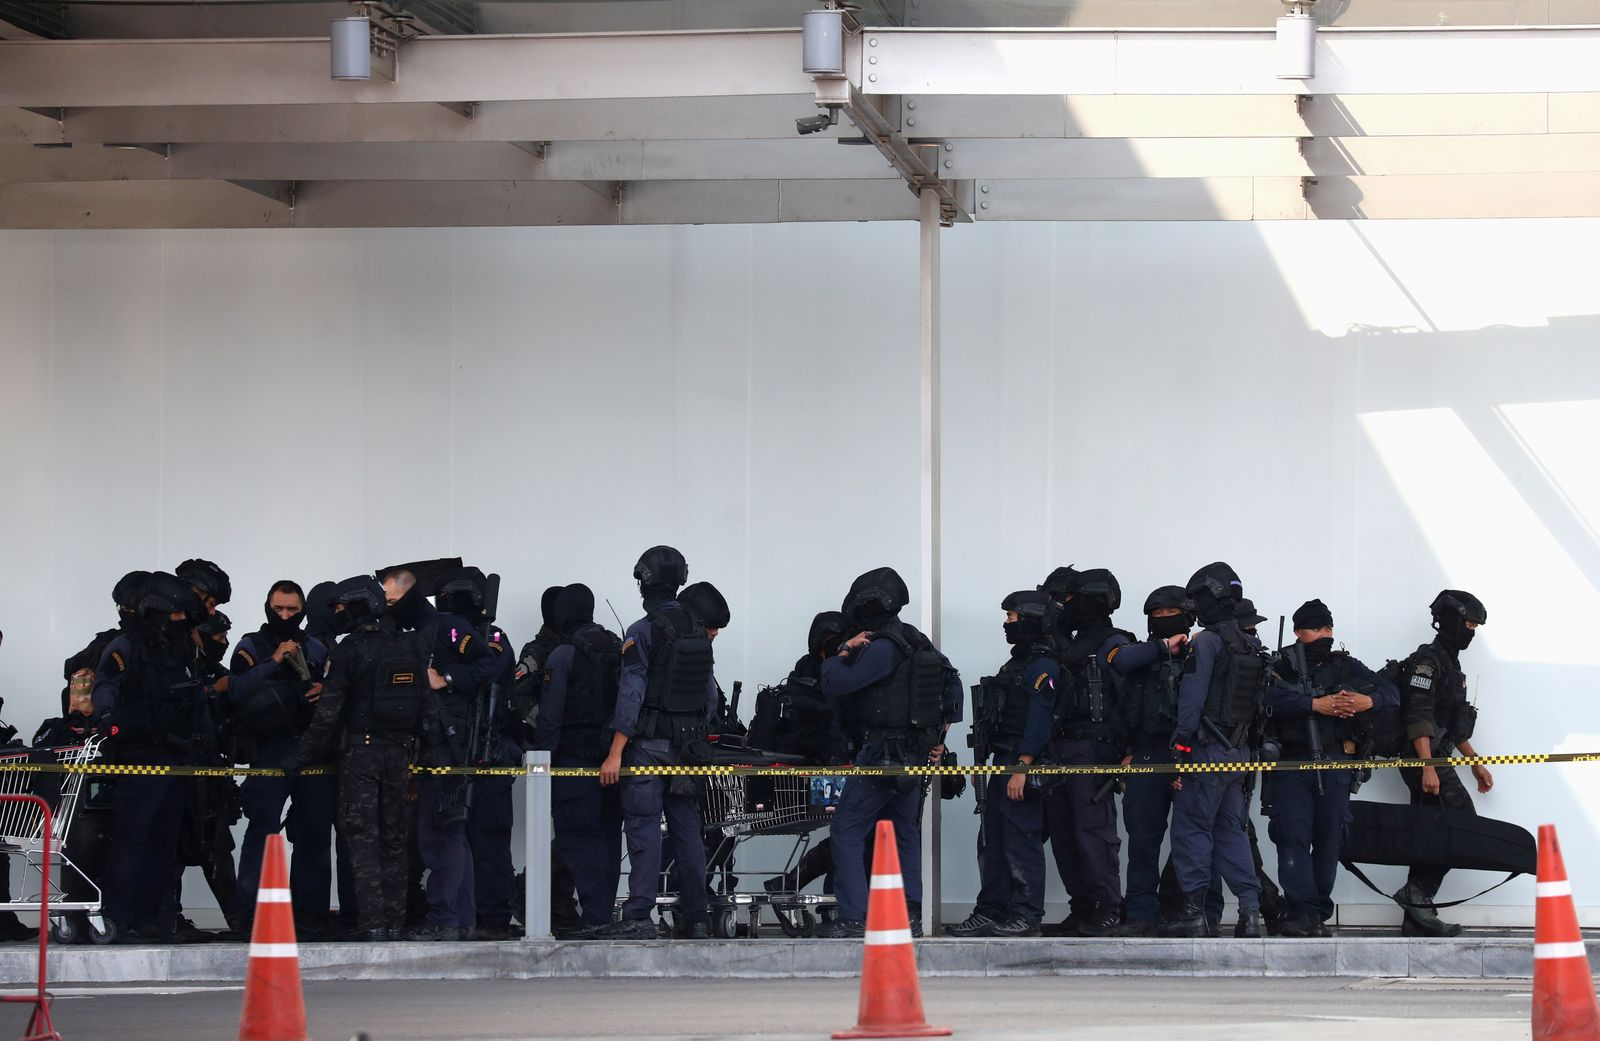 Thai security forces gather at Terminal 21 mall after completing their mission to stop a soldier on a rampage after a mass shooting, Nakhon Ratchasima